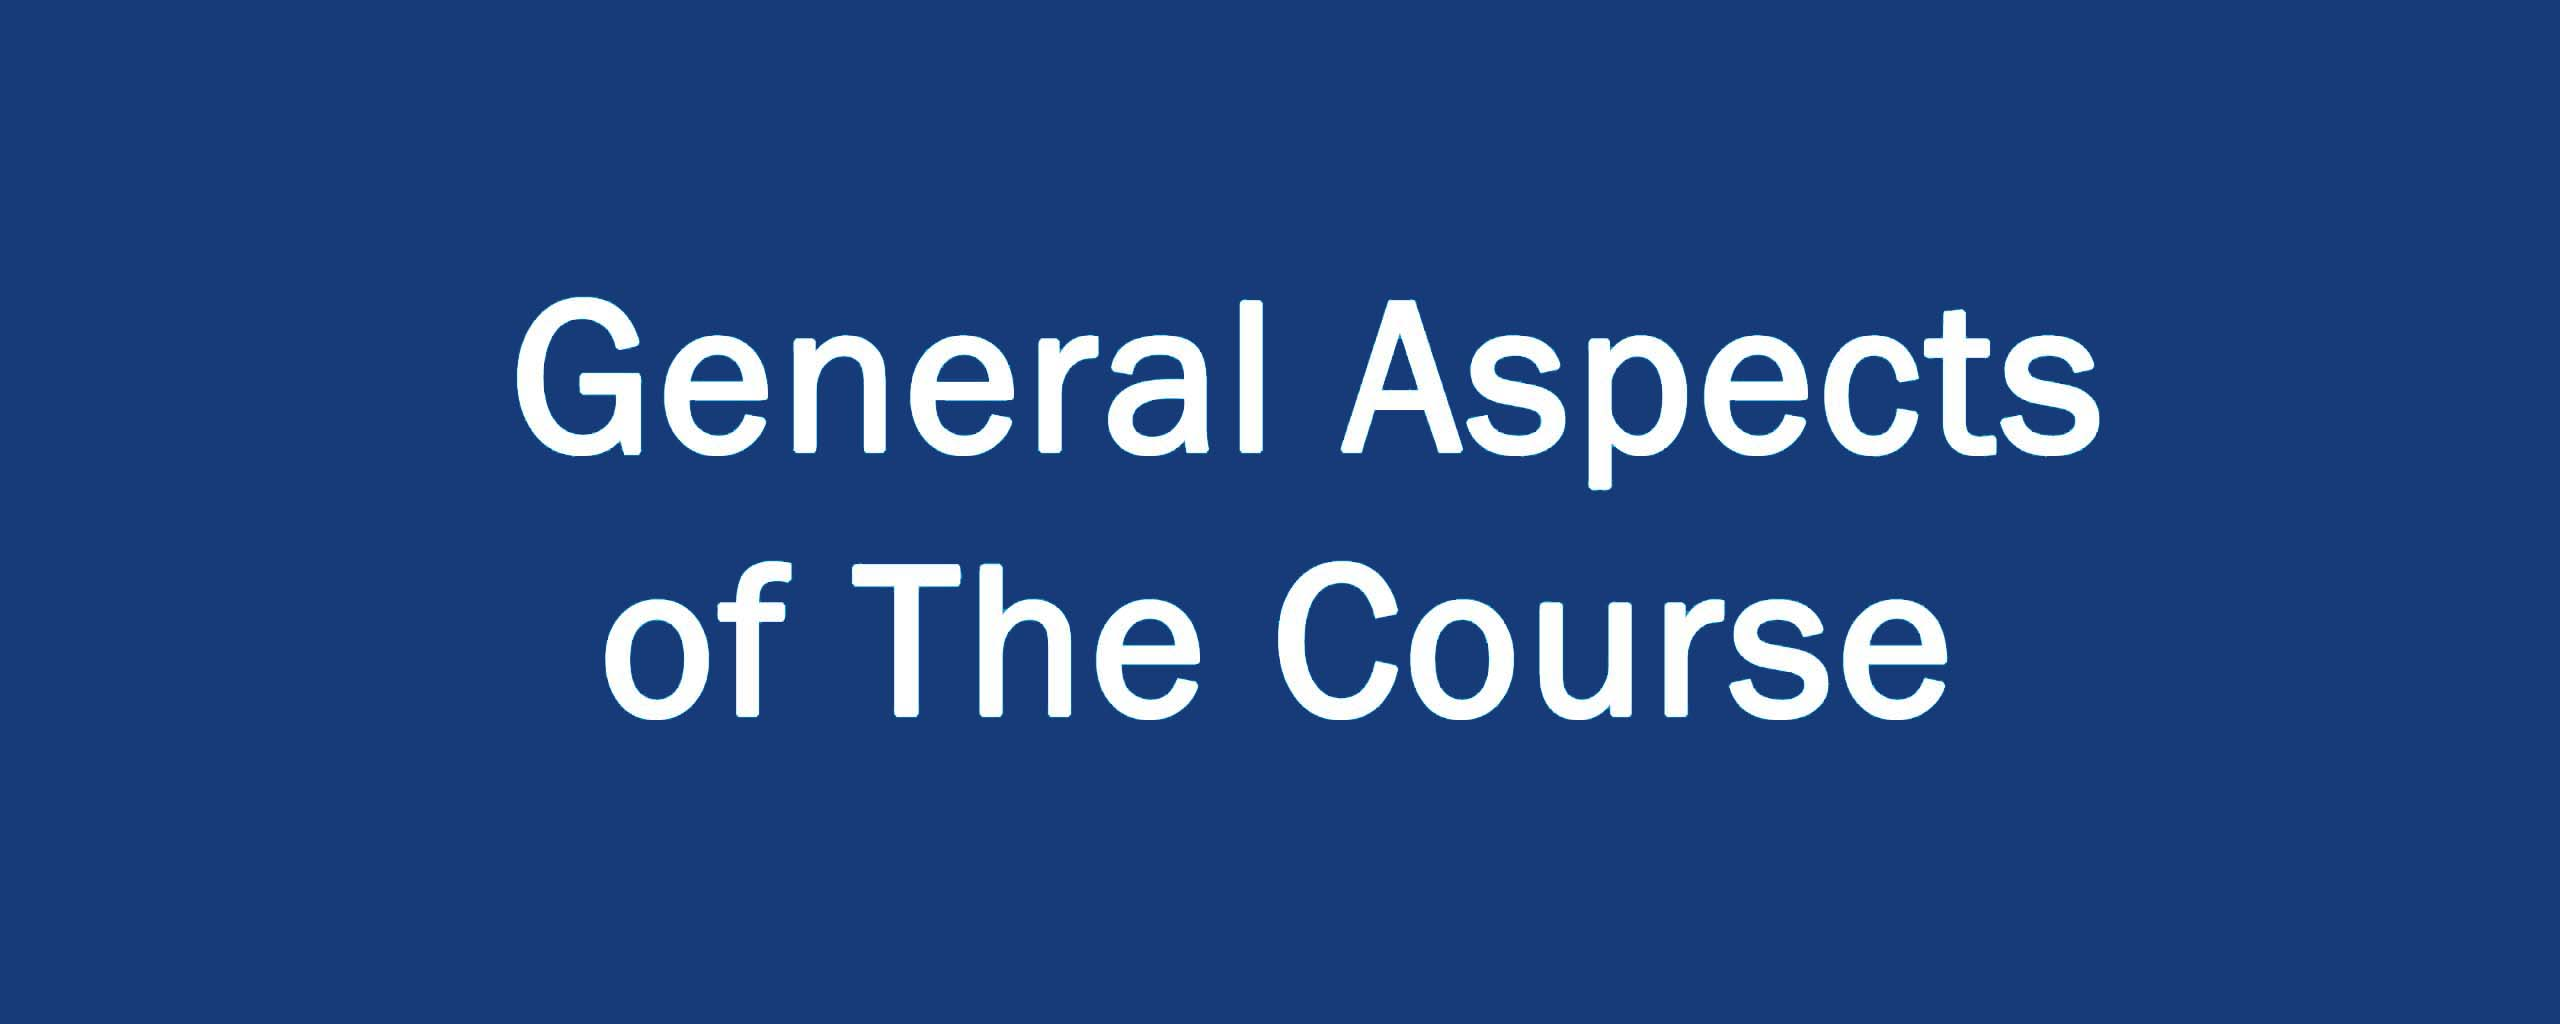 General Aspects of The Course